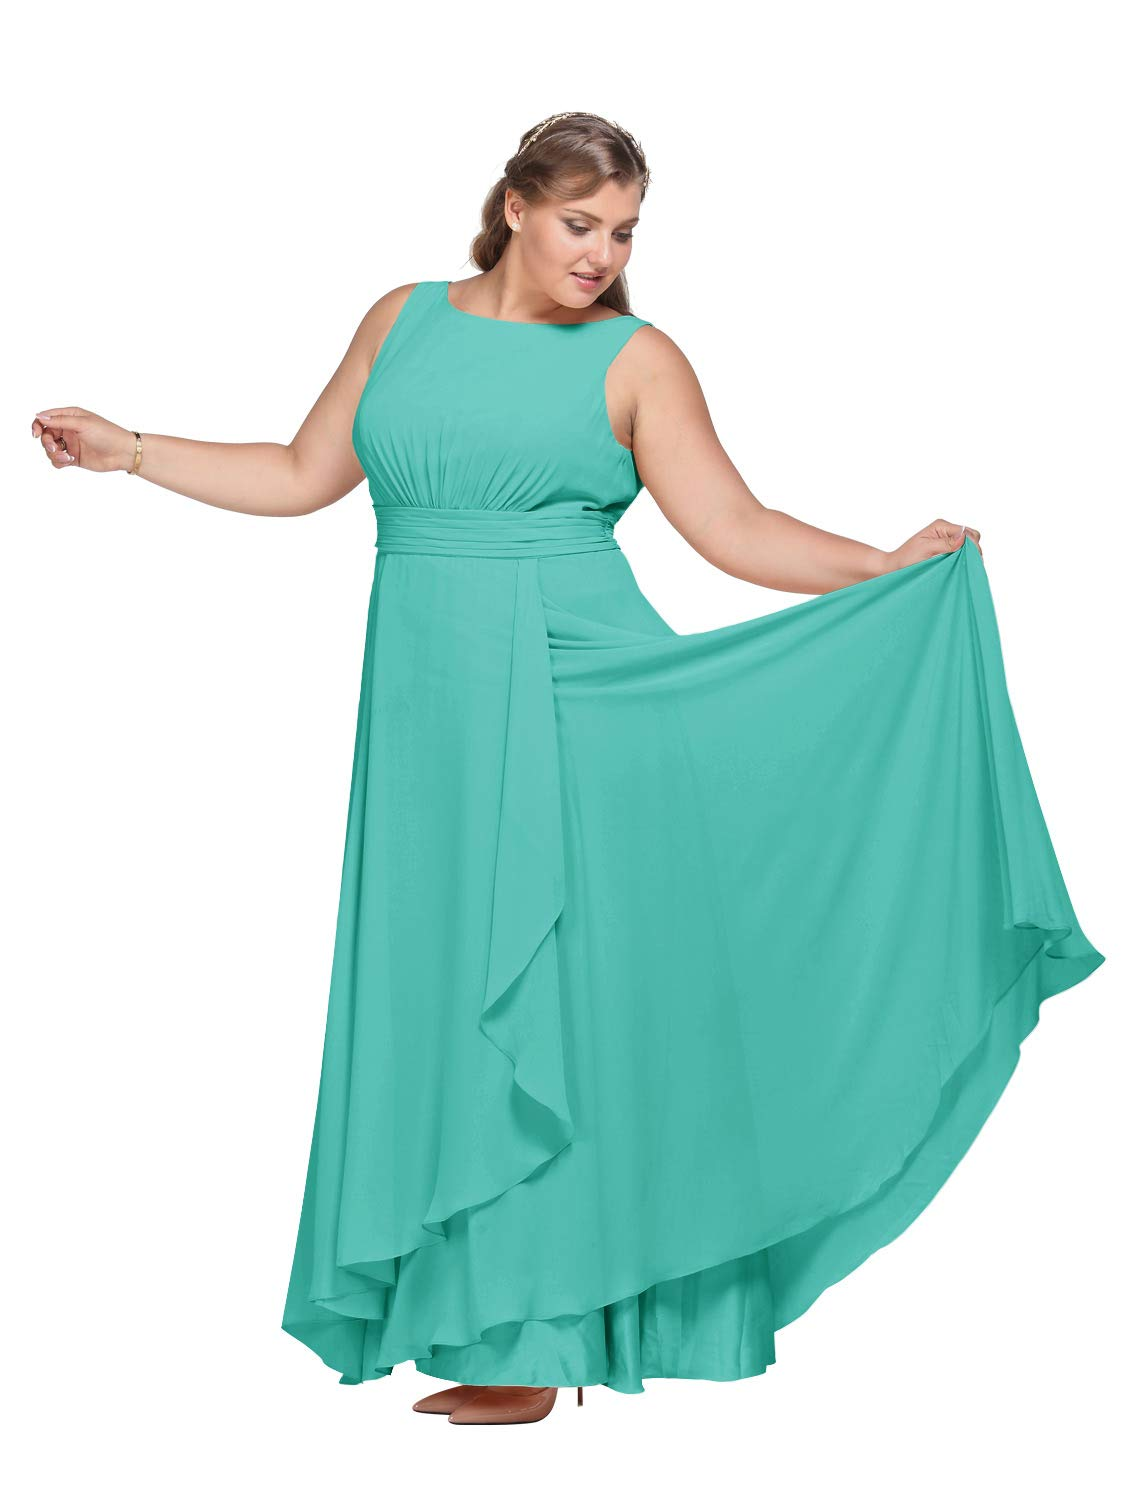 AW Bridal Chiffon Bridesmaid Dress Long Plus Size Formal Prom Party Evening  Maxi Dresses Sleeveless, Tiffany, US20